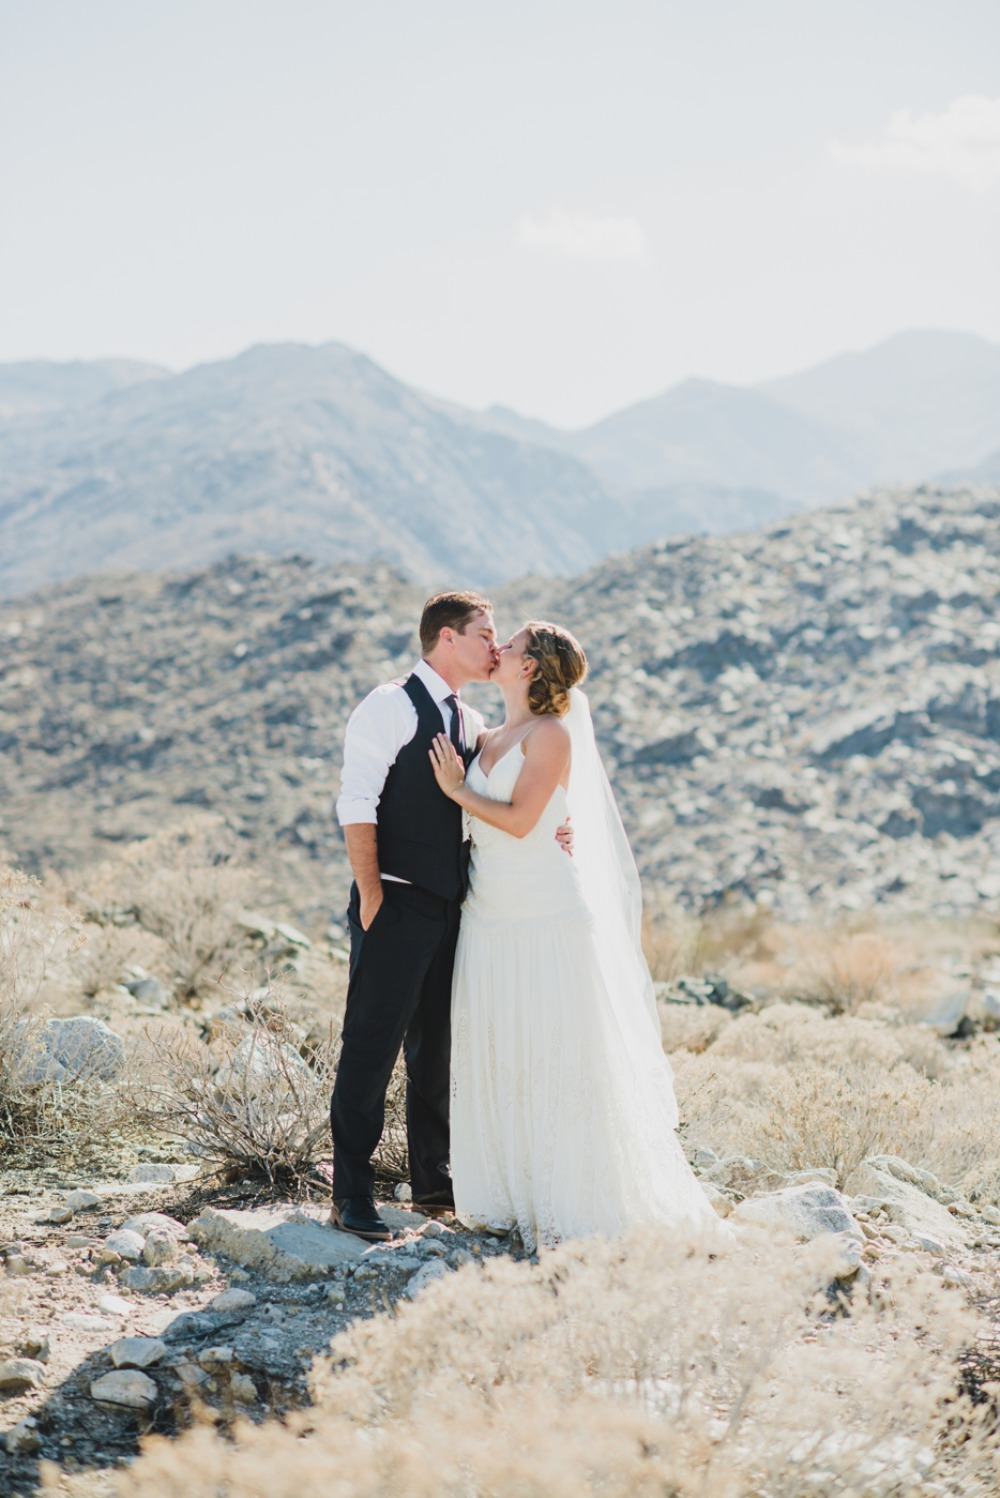 Desert wedding photo